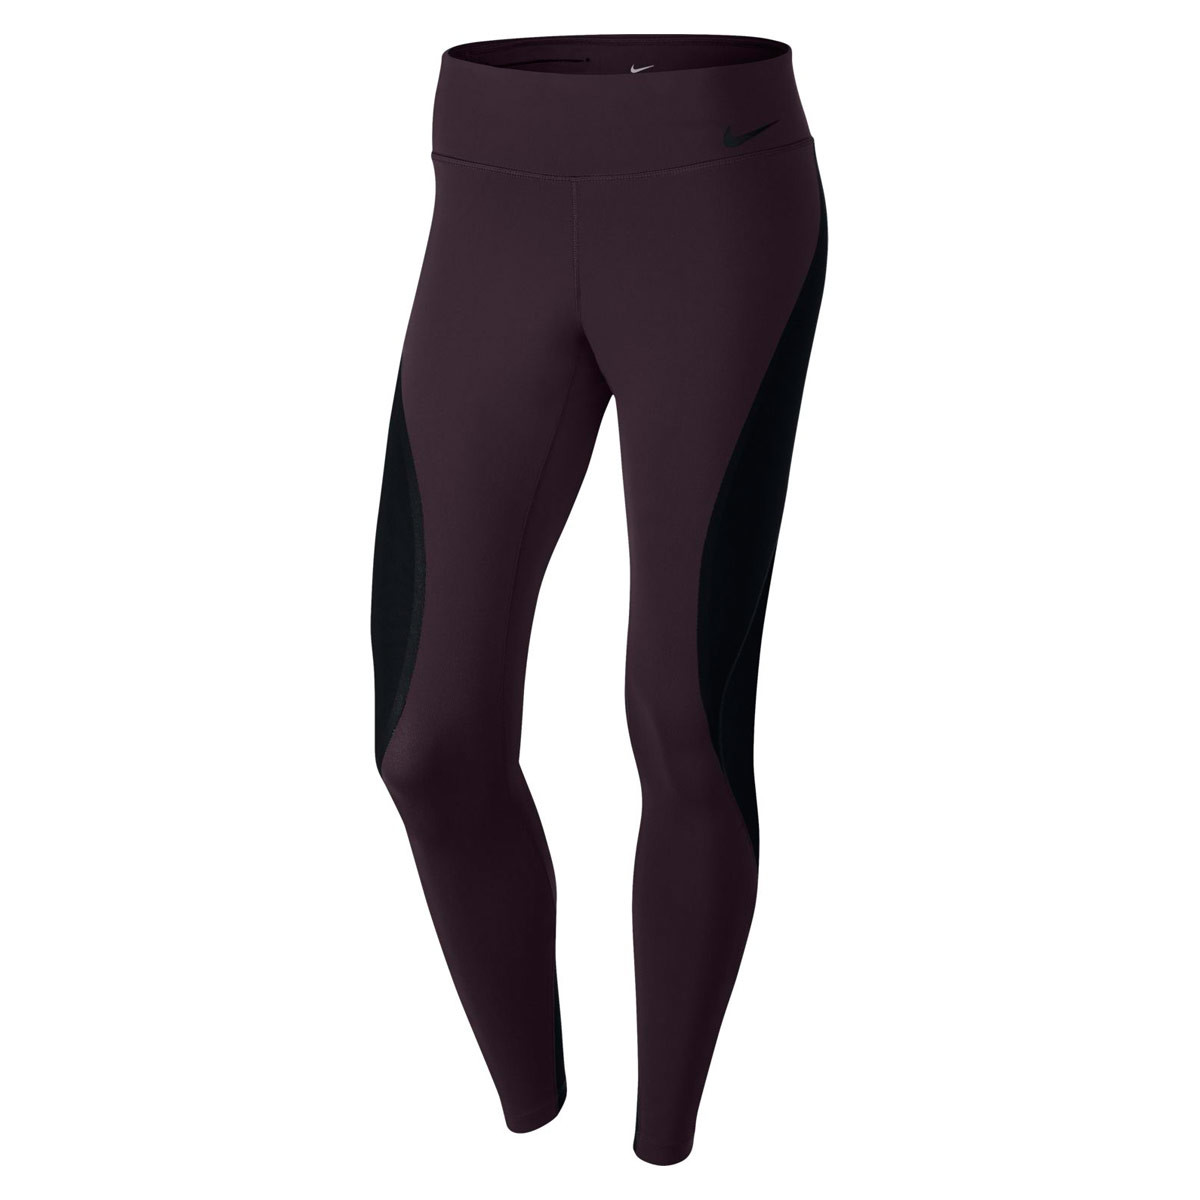 8911729ef875a Nike Power Legend Training Tights - Running trousers for Women - Brown |  21RUN